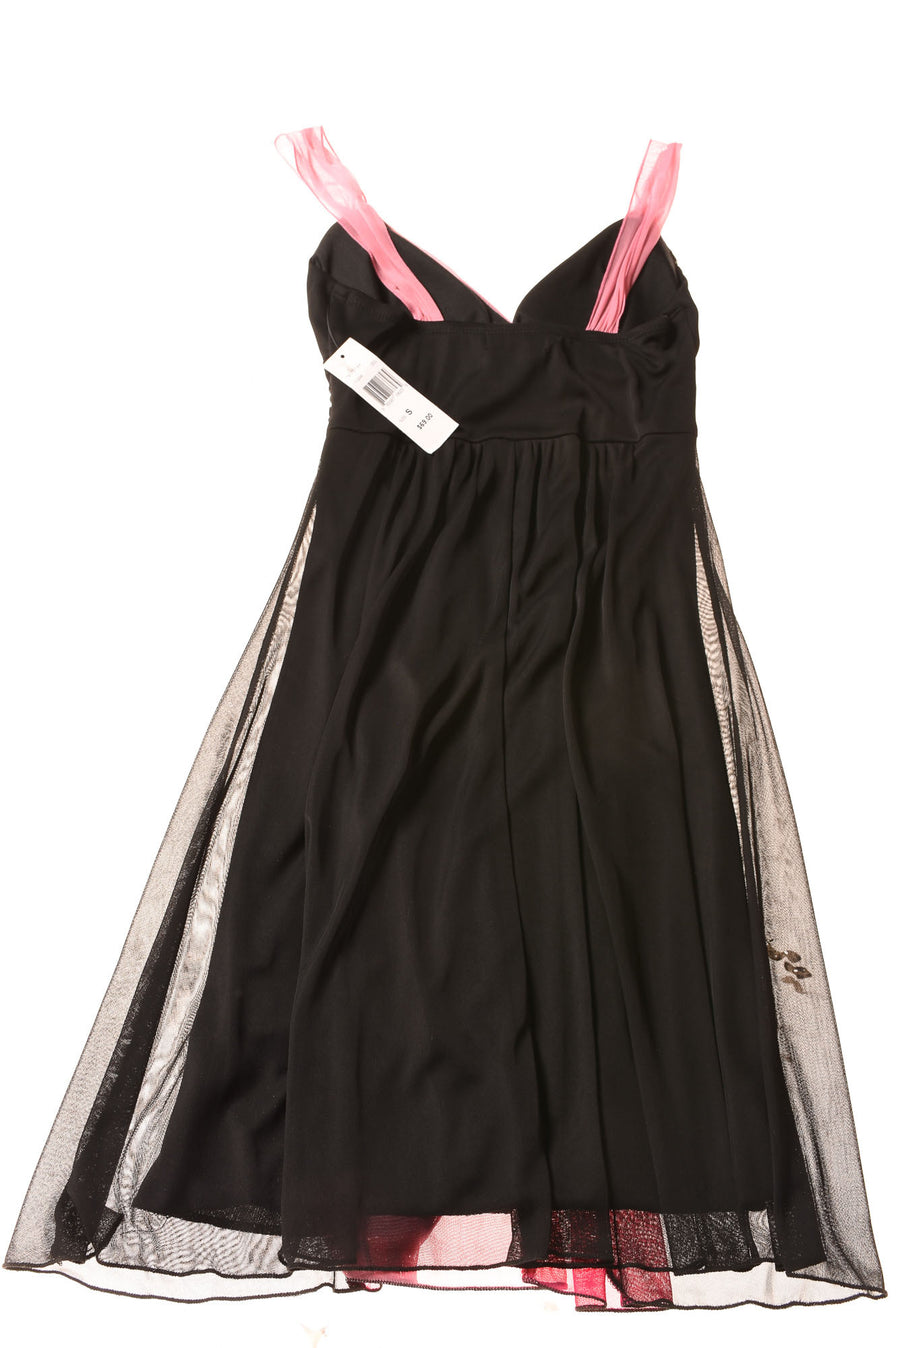 NEW Trixxi Women's Dress Small Pink & Black